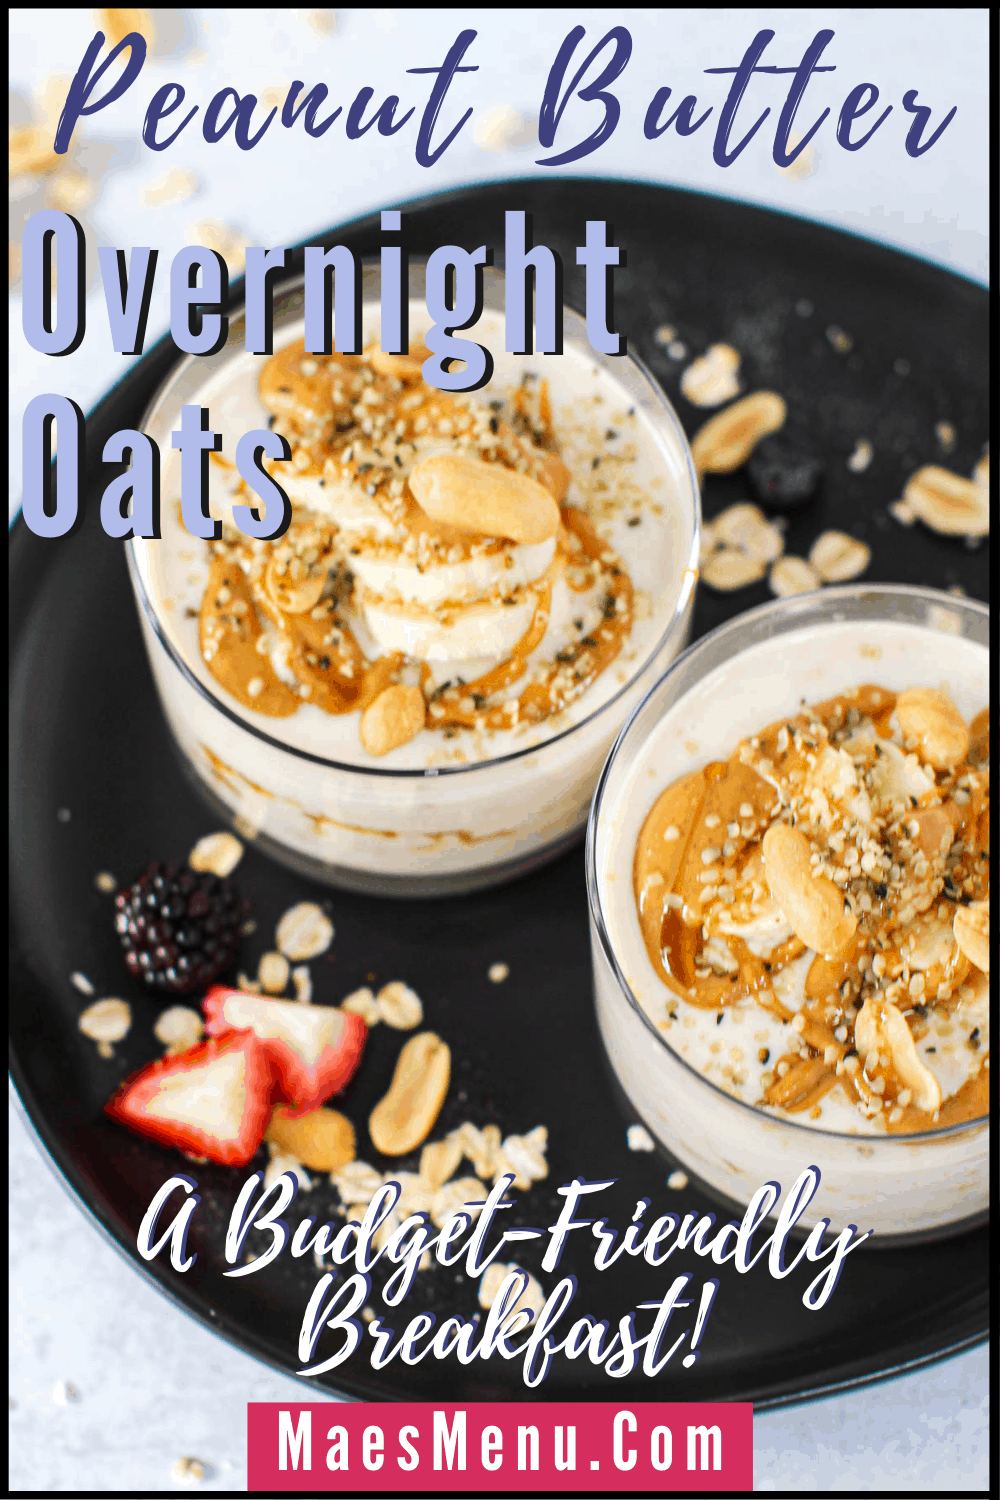 A pinterest pin for peanut butter overnight oats. On the image is an angled overhead shot of the oats. On the image reads